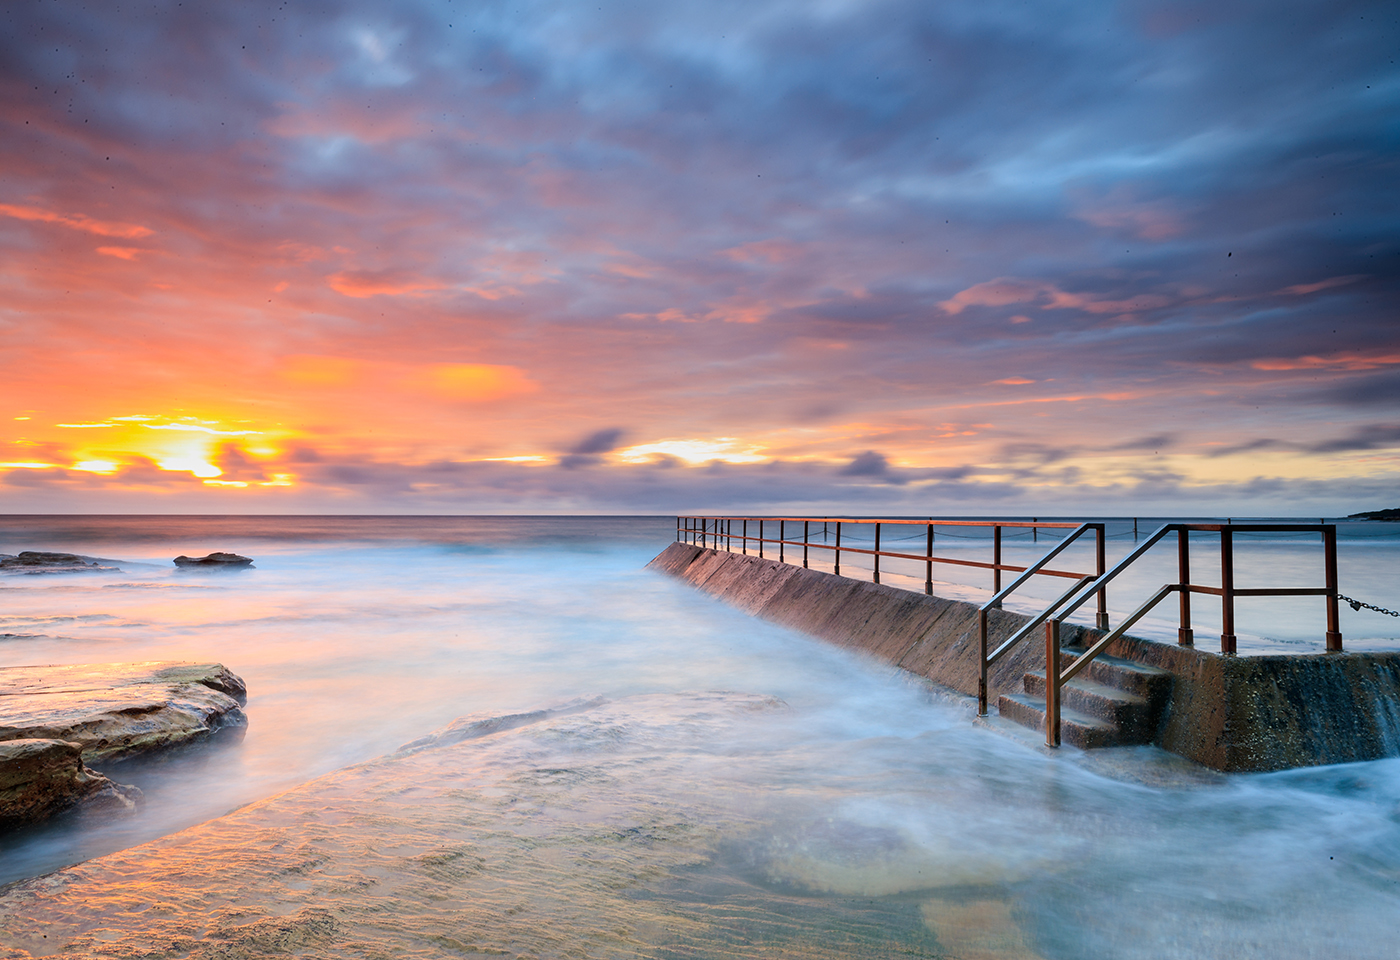 Landscape image of Cronulla beach